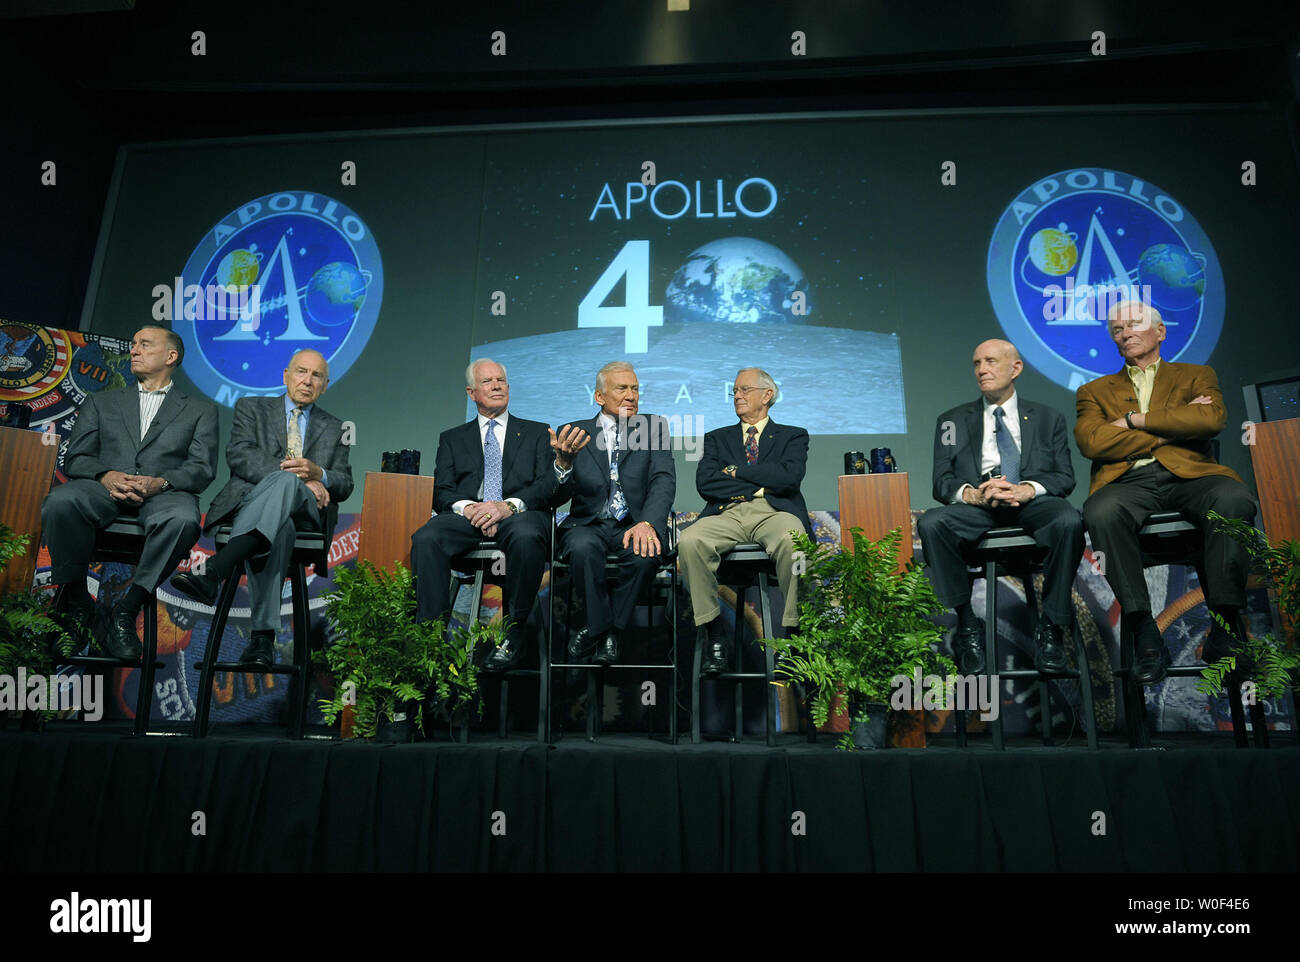 From left to right, former astronauts, Walt Cunningham, Apollo 7, James Lovell Apollo 8 and Apollo 11, David Scott Apollo 9 and Apollo 15, Buzz Aldrin, Apollo 11, Charles Duke, Apollo 16, Thomas Stafford Apollo 10 and Eugene Cernan, Apollo 10 and Apollo 17, speak on the 40th anniversary of the lunar landing and their experiences during a news conference at NASA headquarters in Washington on July 20, 2009. (UPI Photo/Kevin Dietsch) - Stock Image